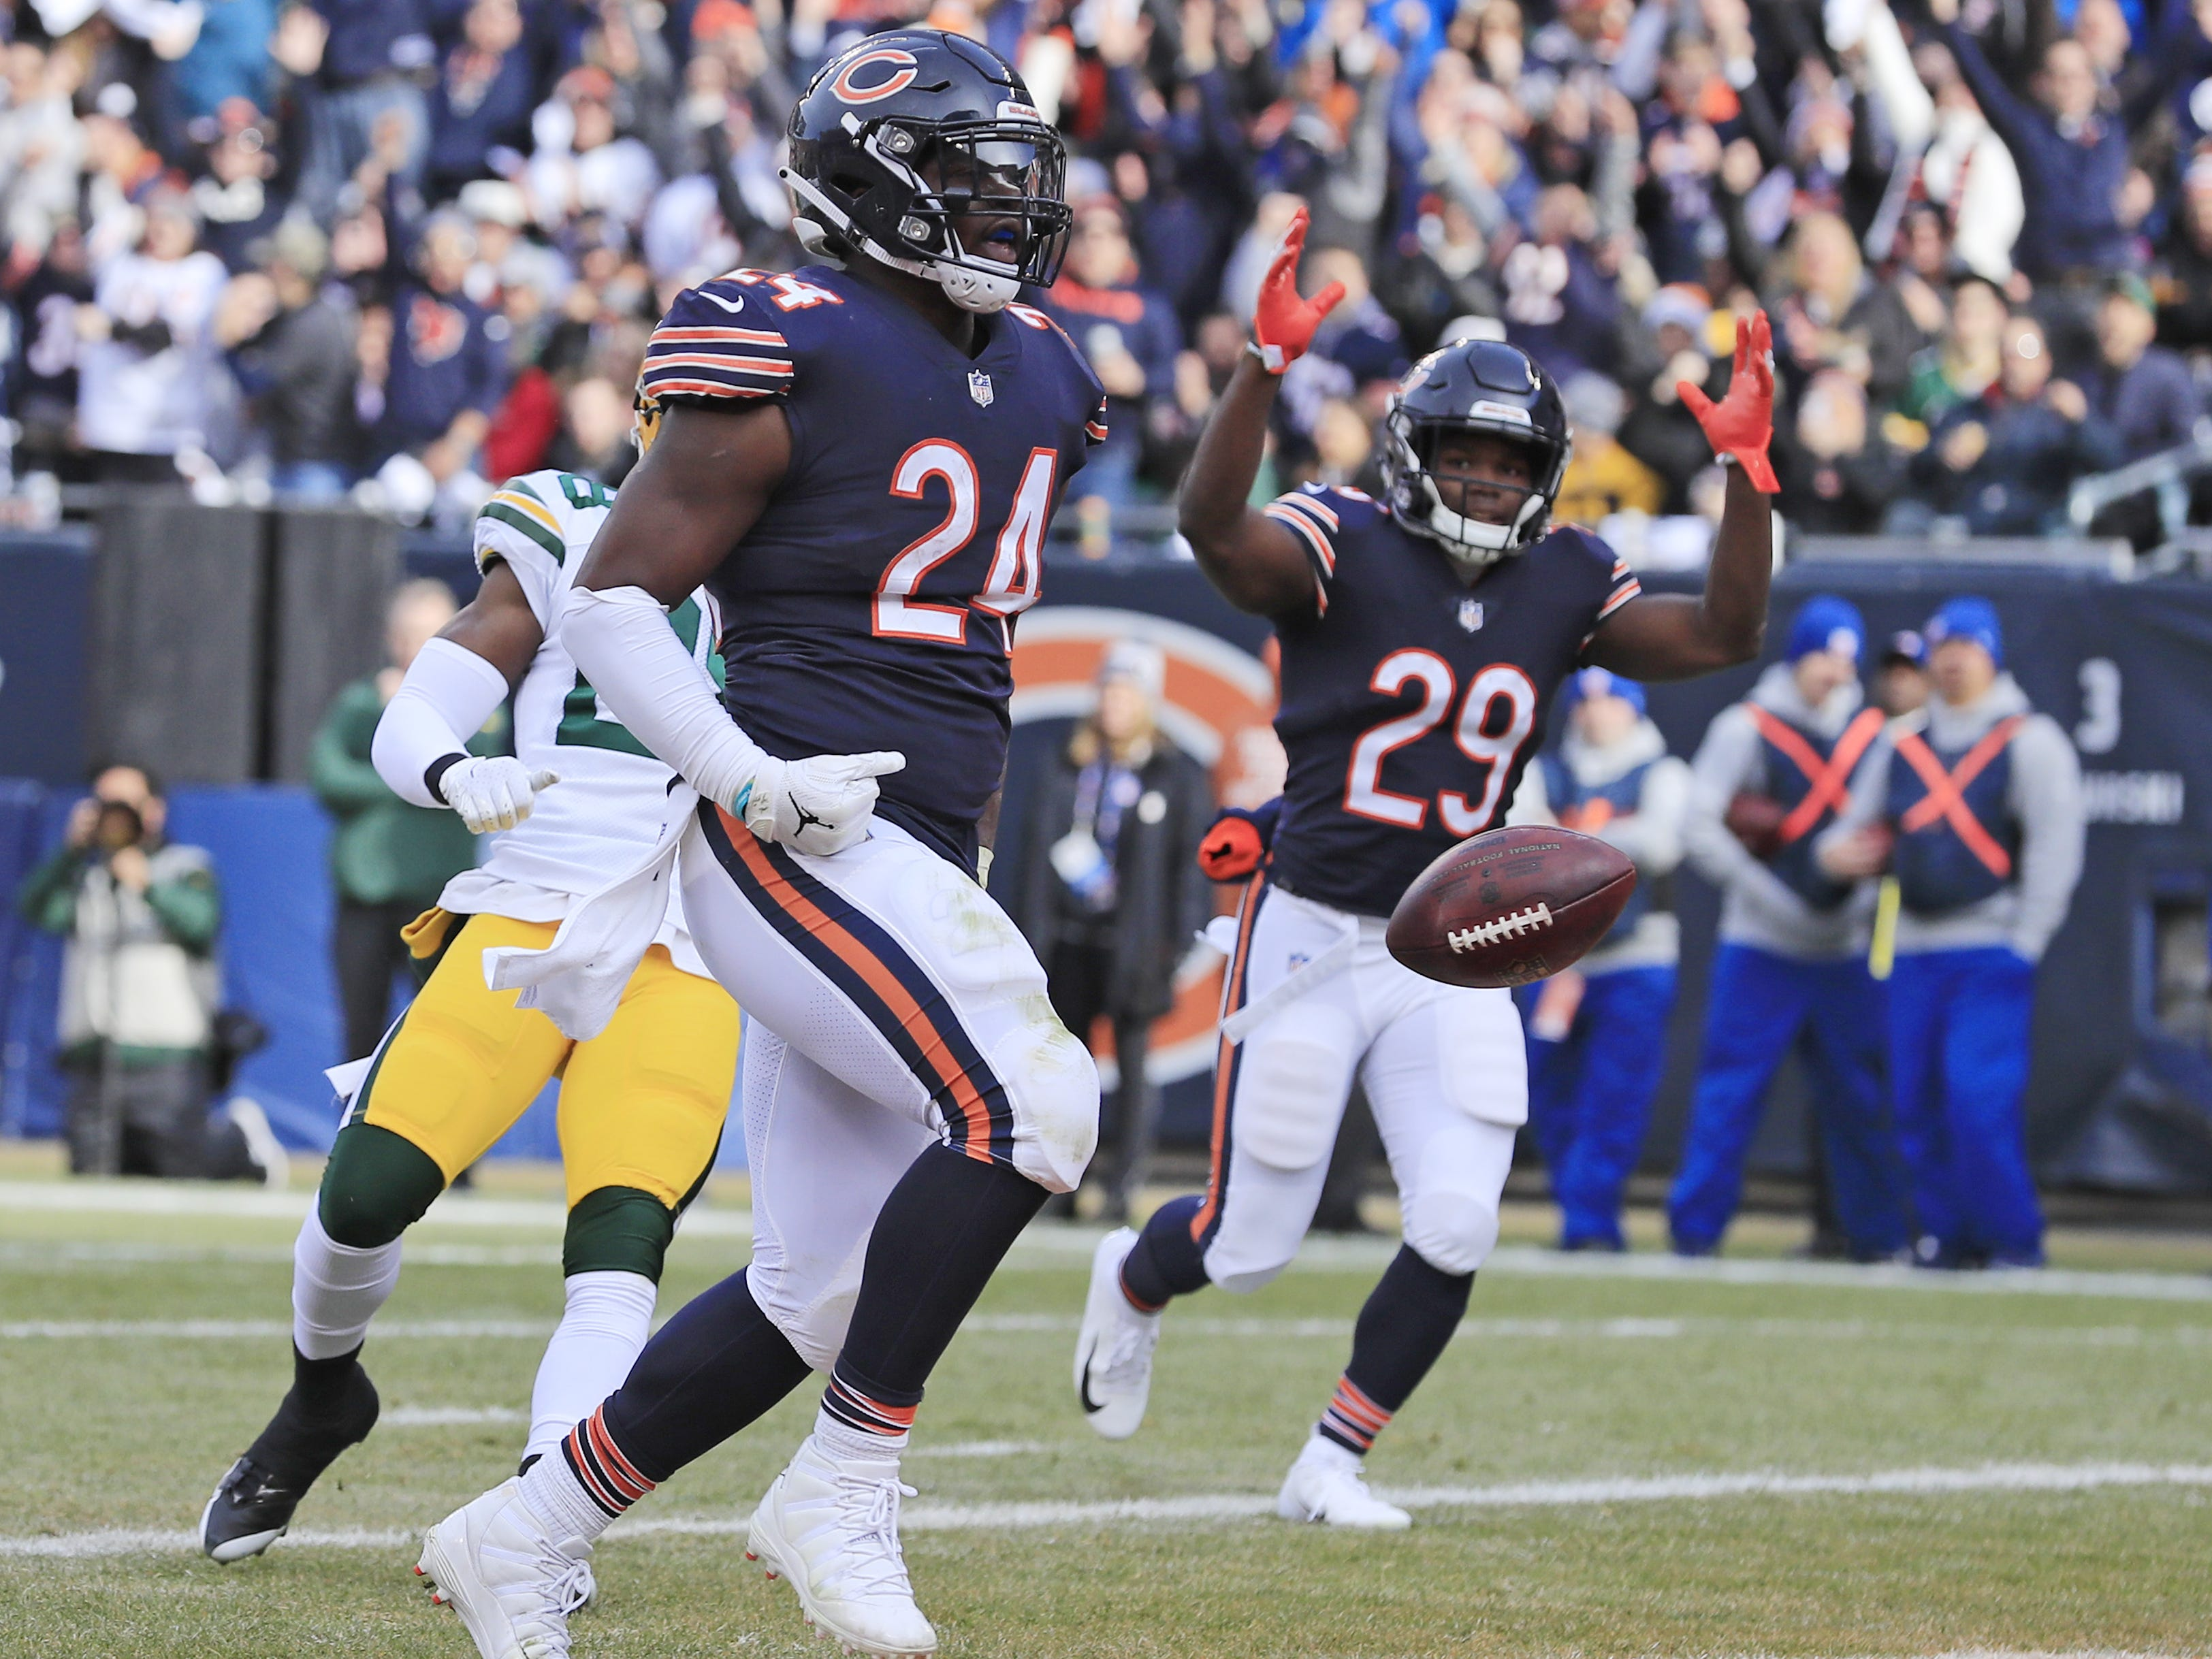 Chicago Bears running back Jordan Howard (24) rushes for a touchdown in the first quarter against the Green Bay Packers at Soldier Field on Sunday, December 16, 2018 in Chicago, Illinois. Adam Wesley/USA TODAY NETWORK-Wis